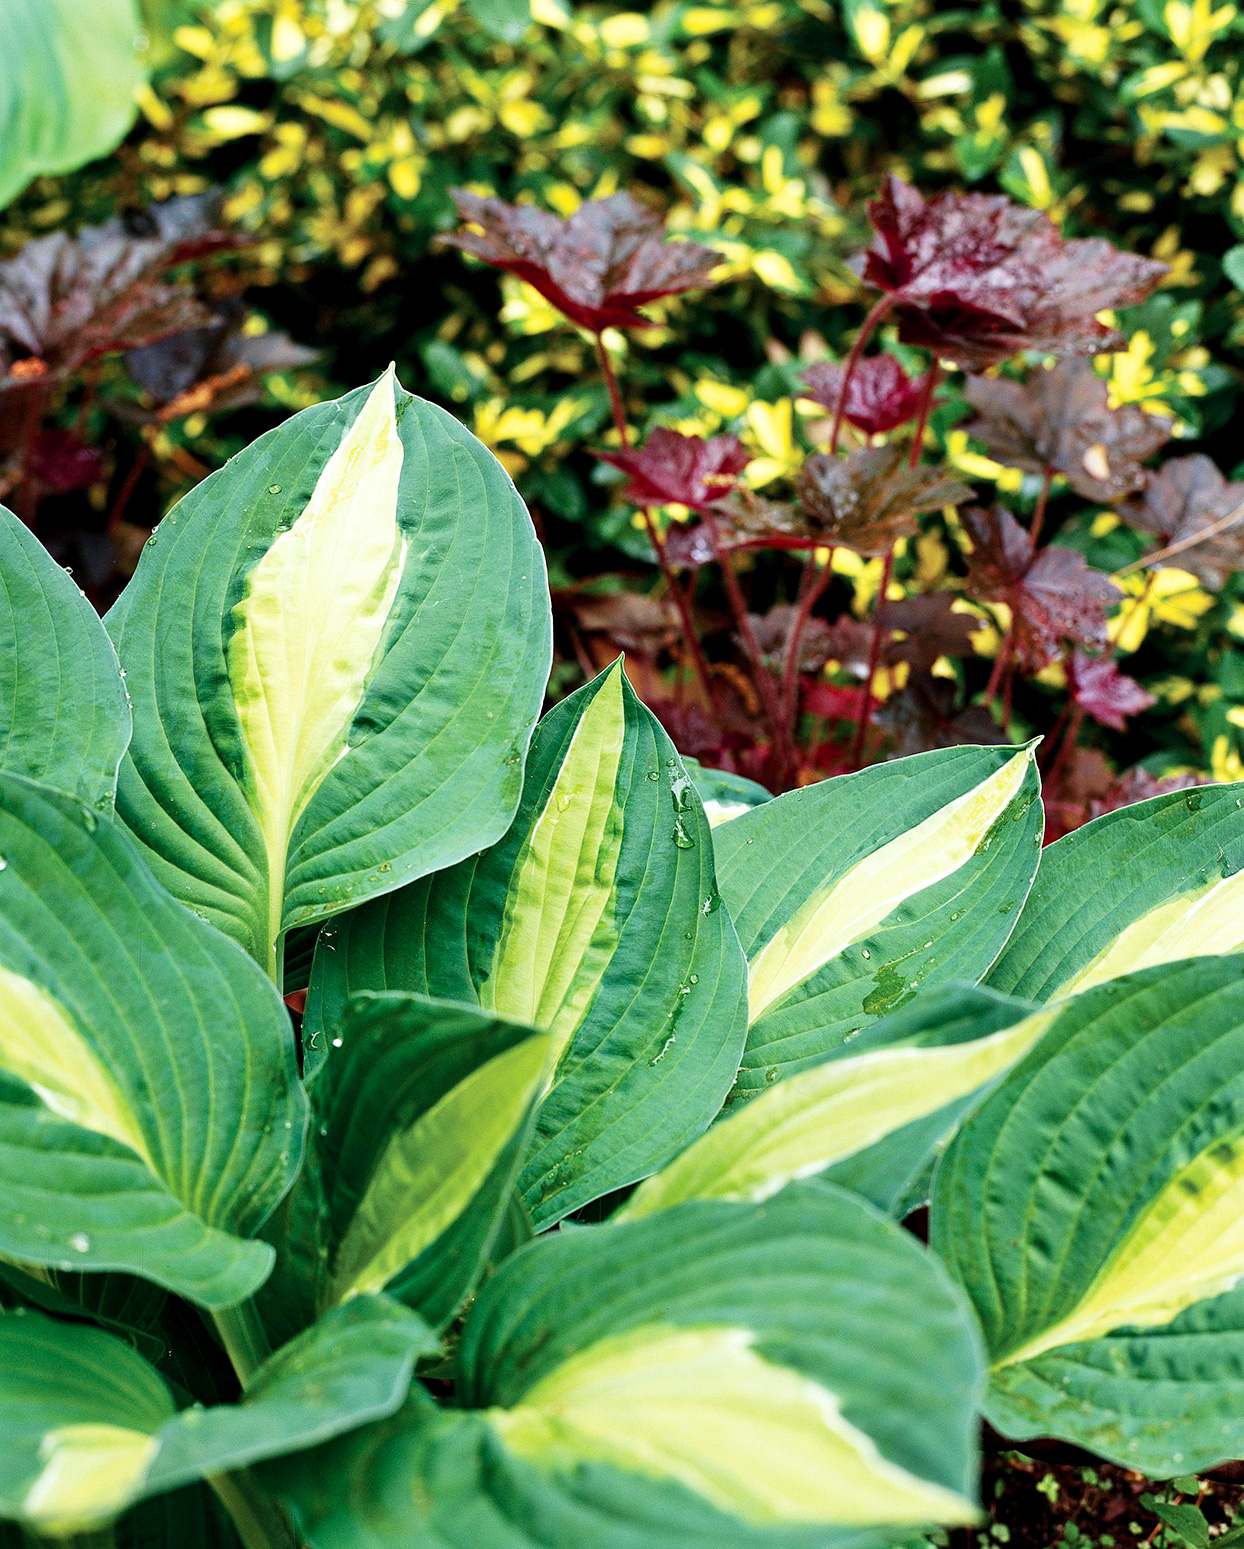 Striptease Hosta with golden centers and green edges